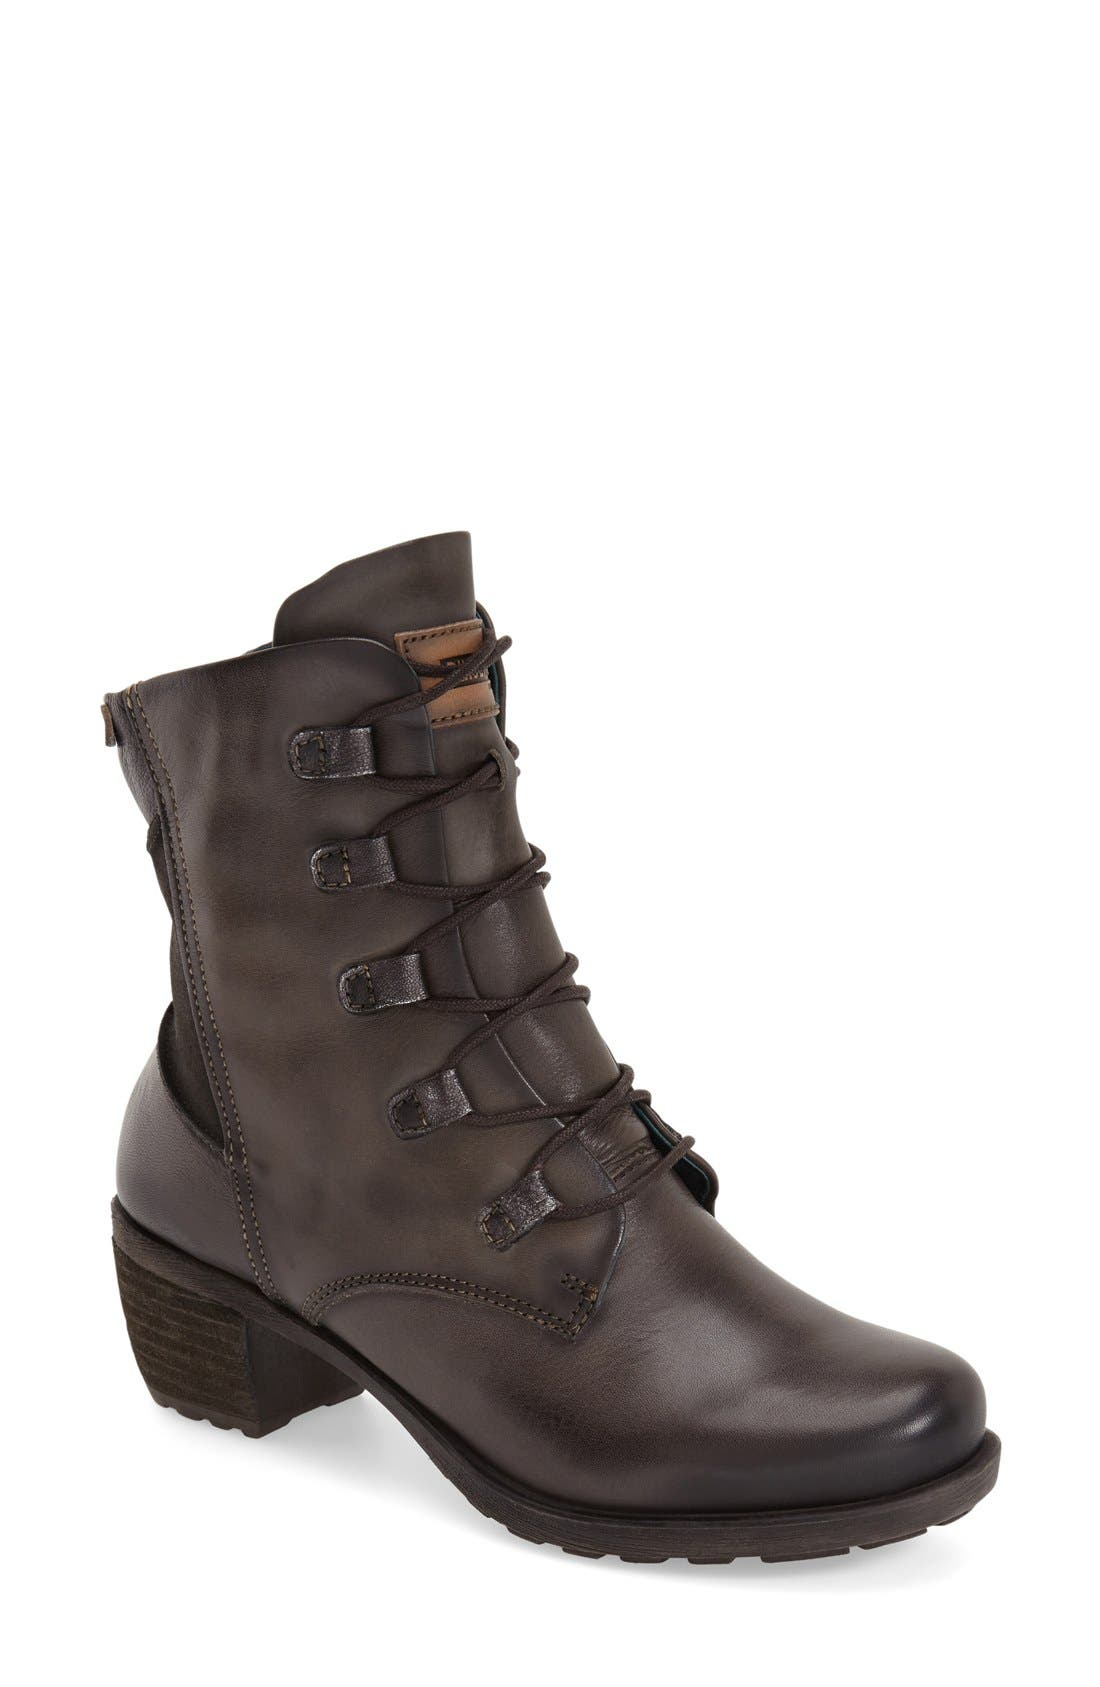 Main Image - PIKOLINOS 'Le Mans' Lace-Up Boot (Women)